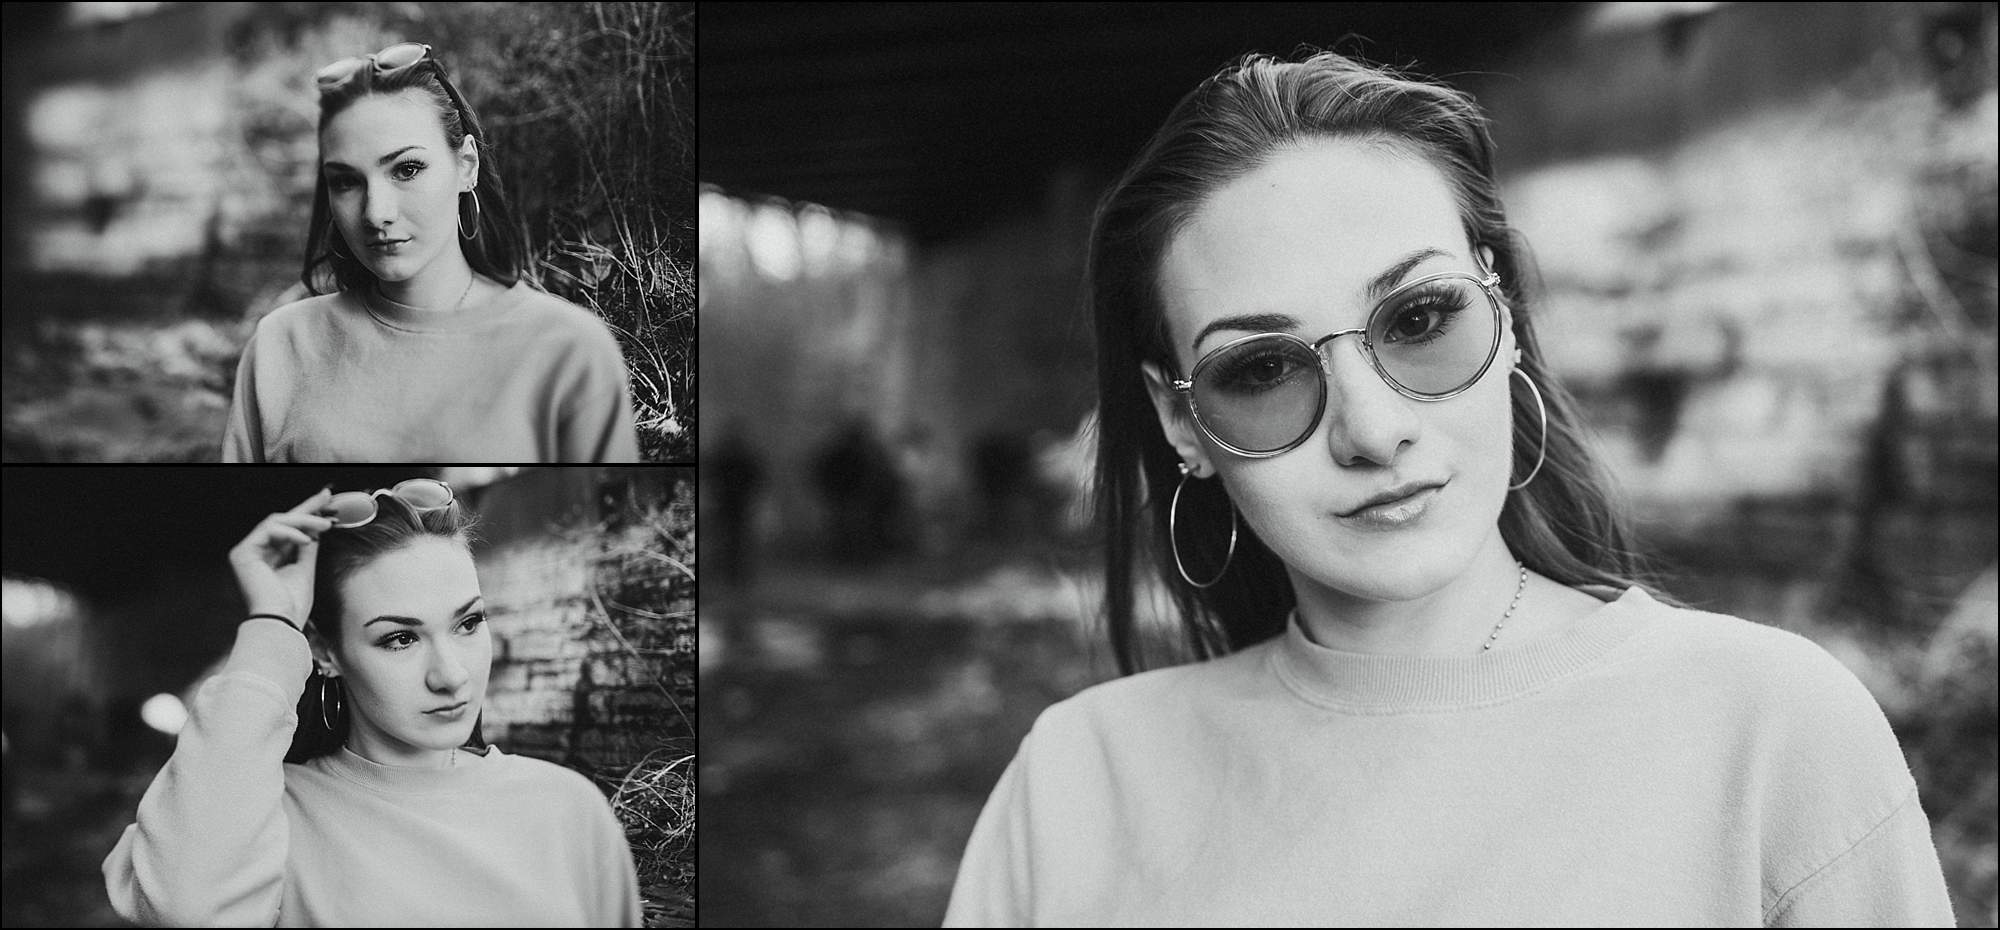 blackandwhite-glasses-creative-portrait